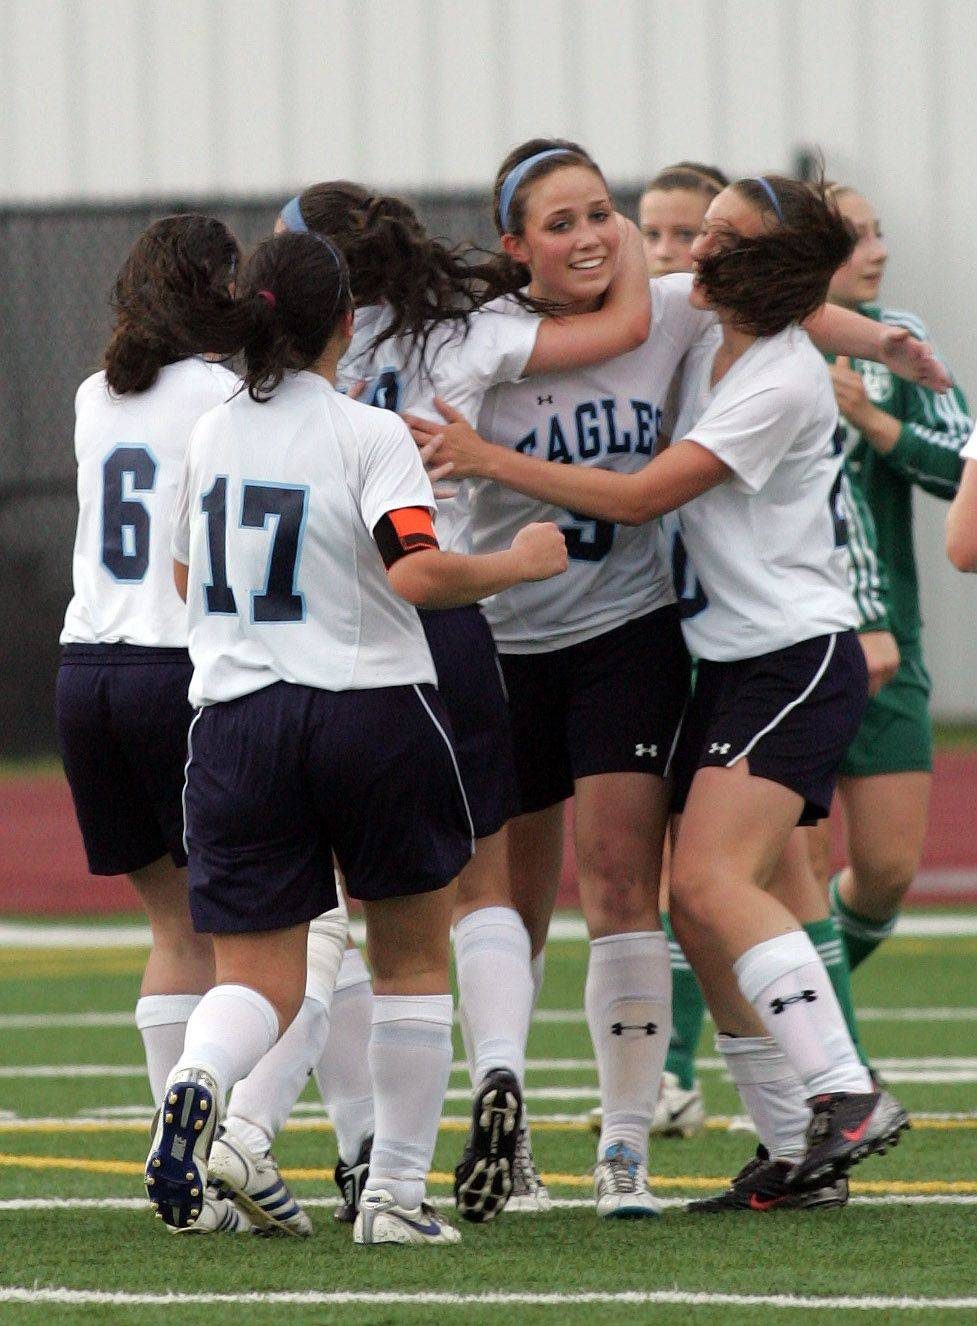 Teammates celebrate the first-half goal of Kate Dunaway, center, of Willows Academy in the Class 1A state soccer third place match in Naperville on Saturday. Willows Academy beat St. Edward 2-0.